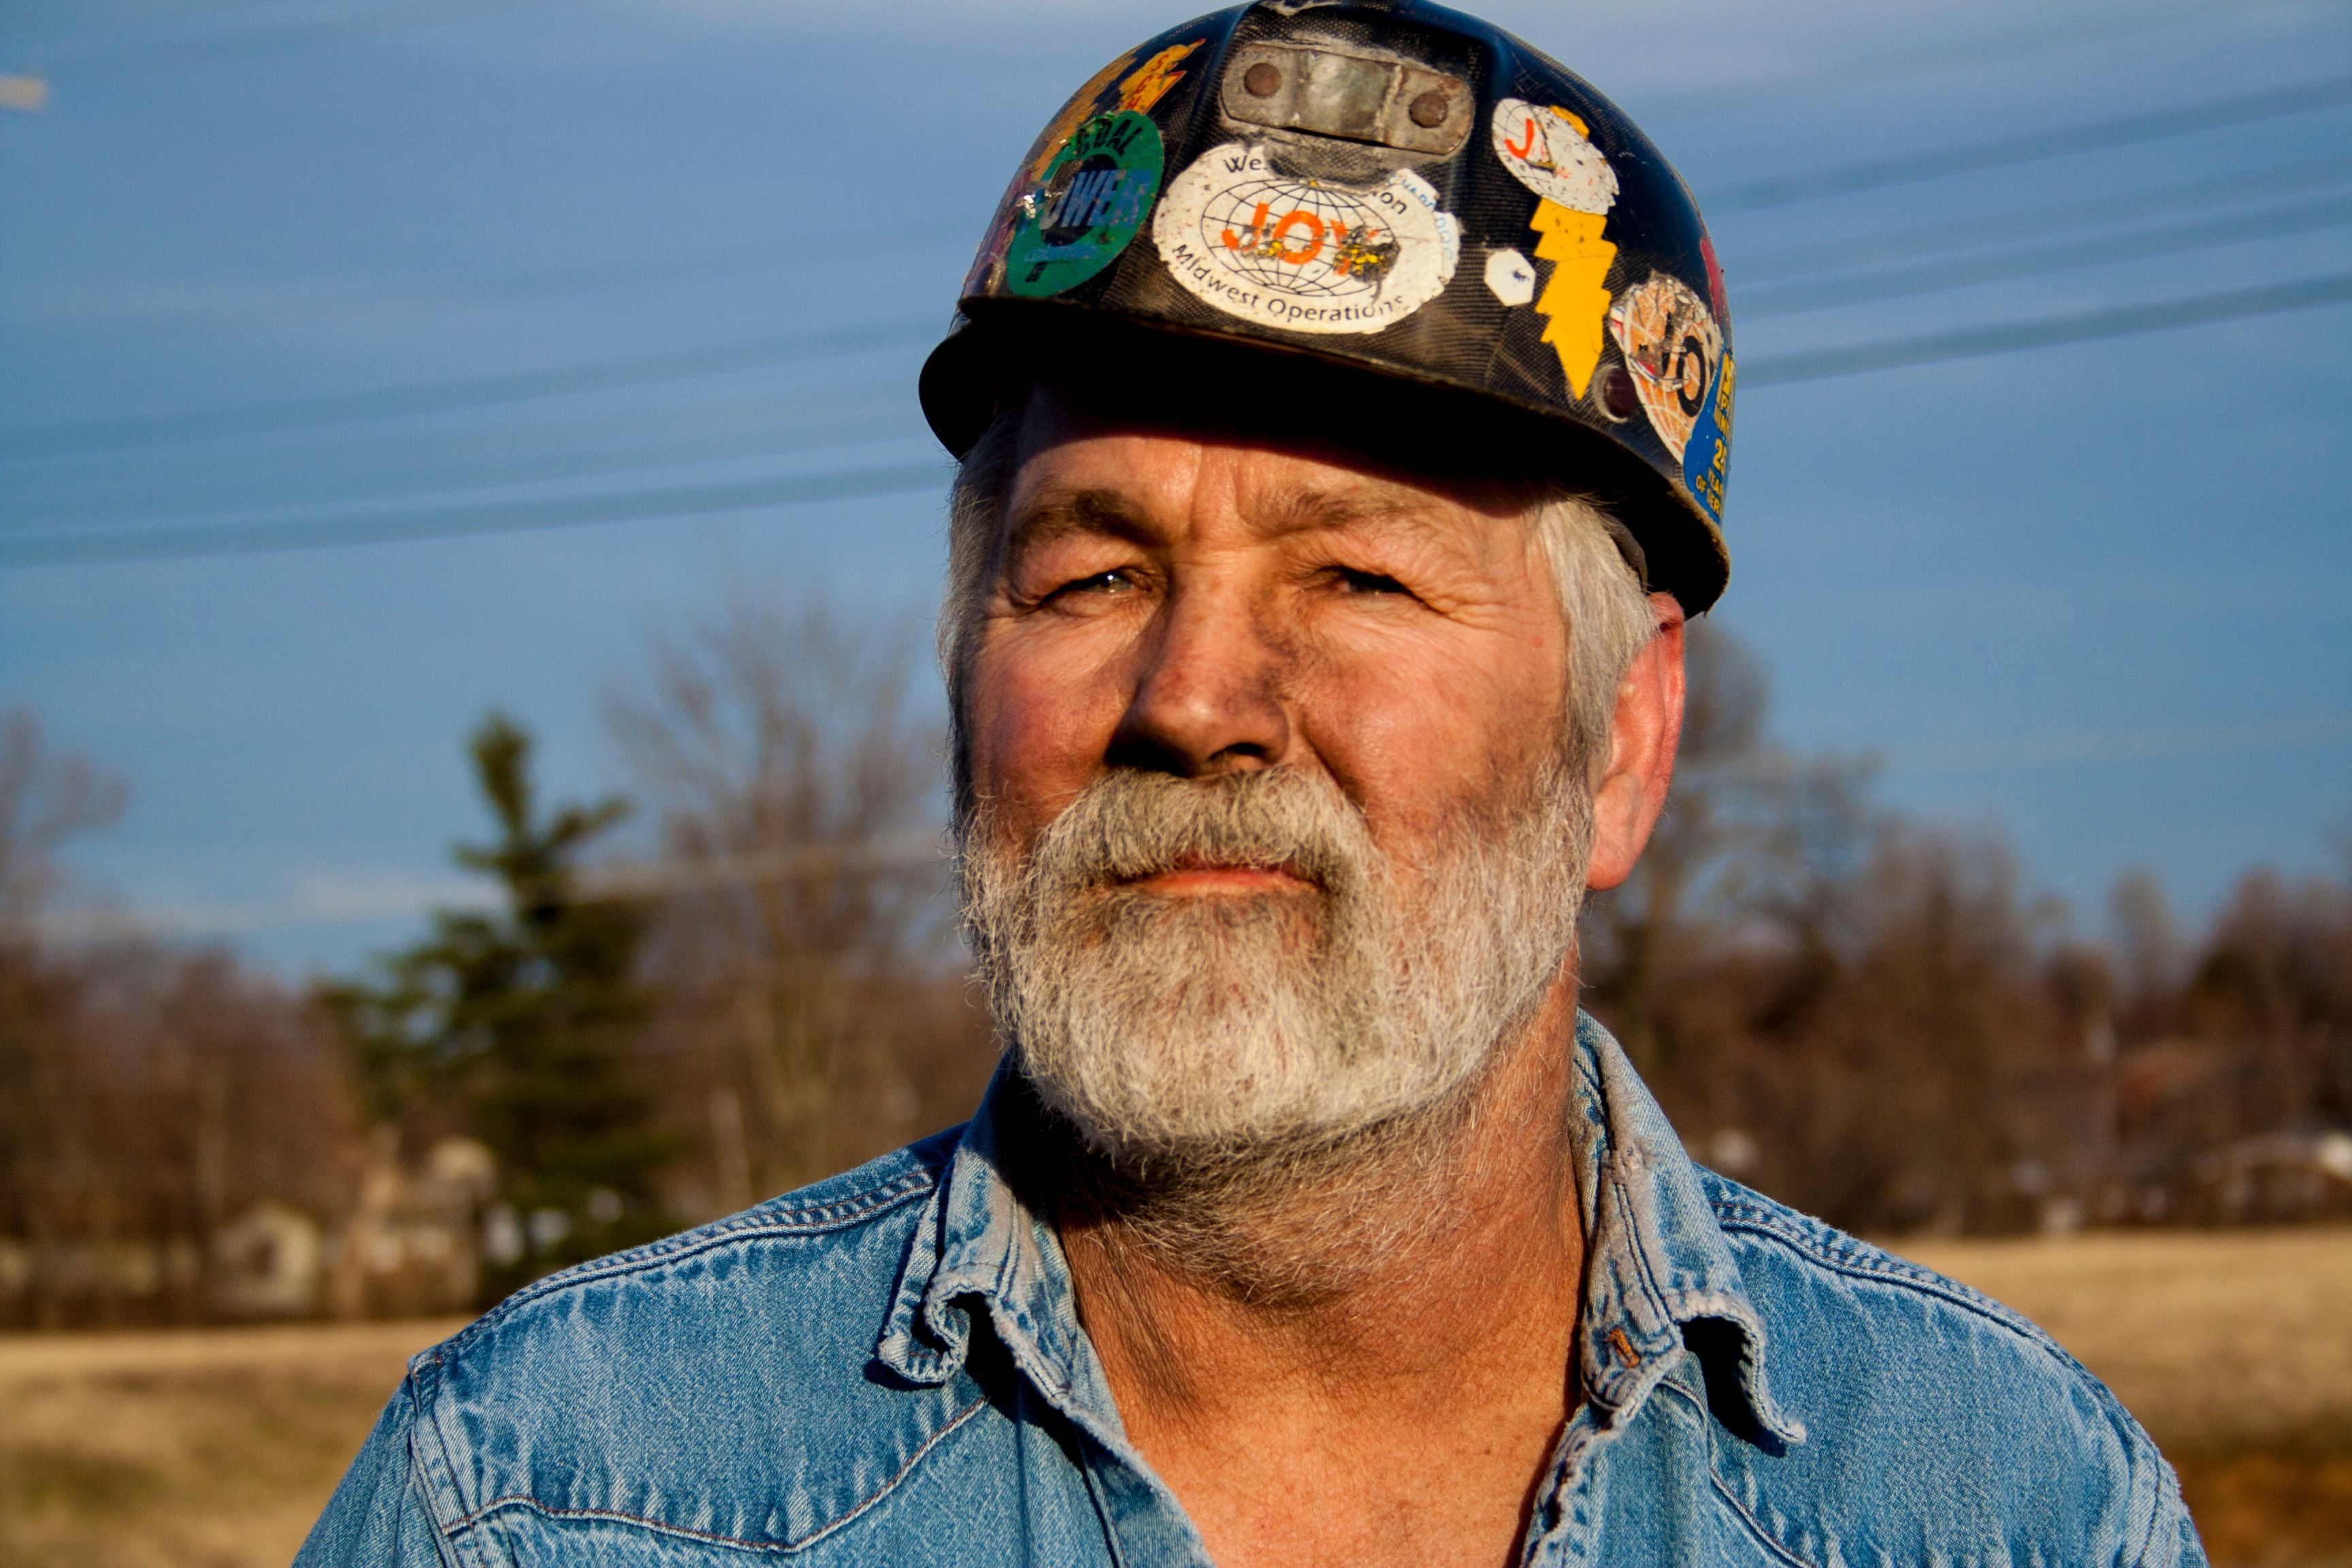 huffingtonpost.com - Dave Jamieson - Coal Company Officials Indicted For Allegedly Hiding Risk Of Black Lung Disease